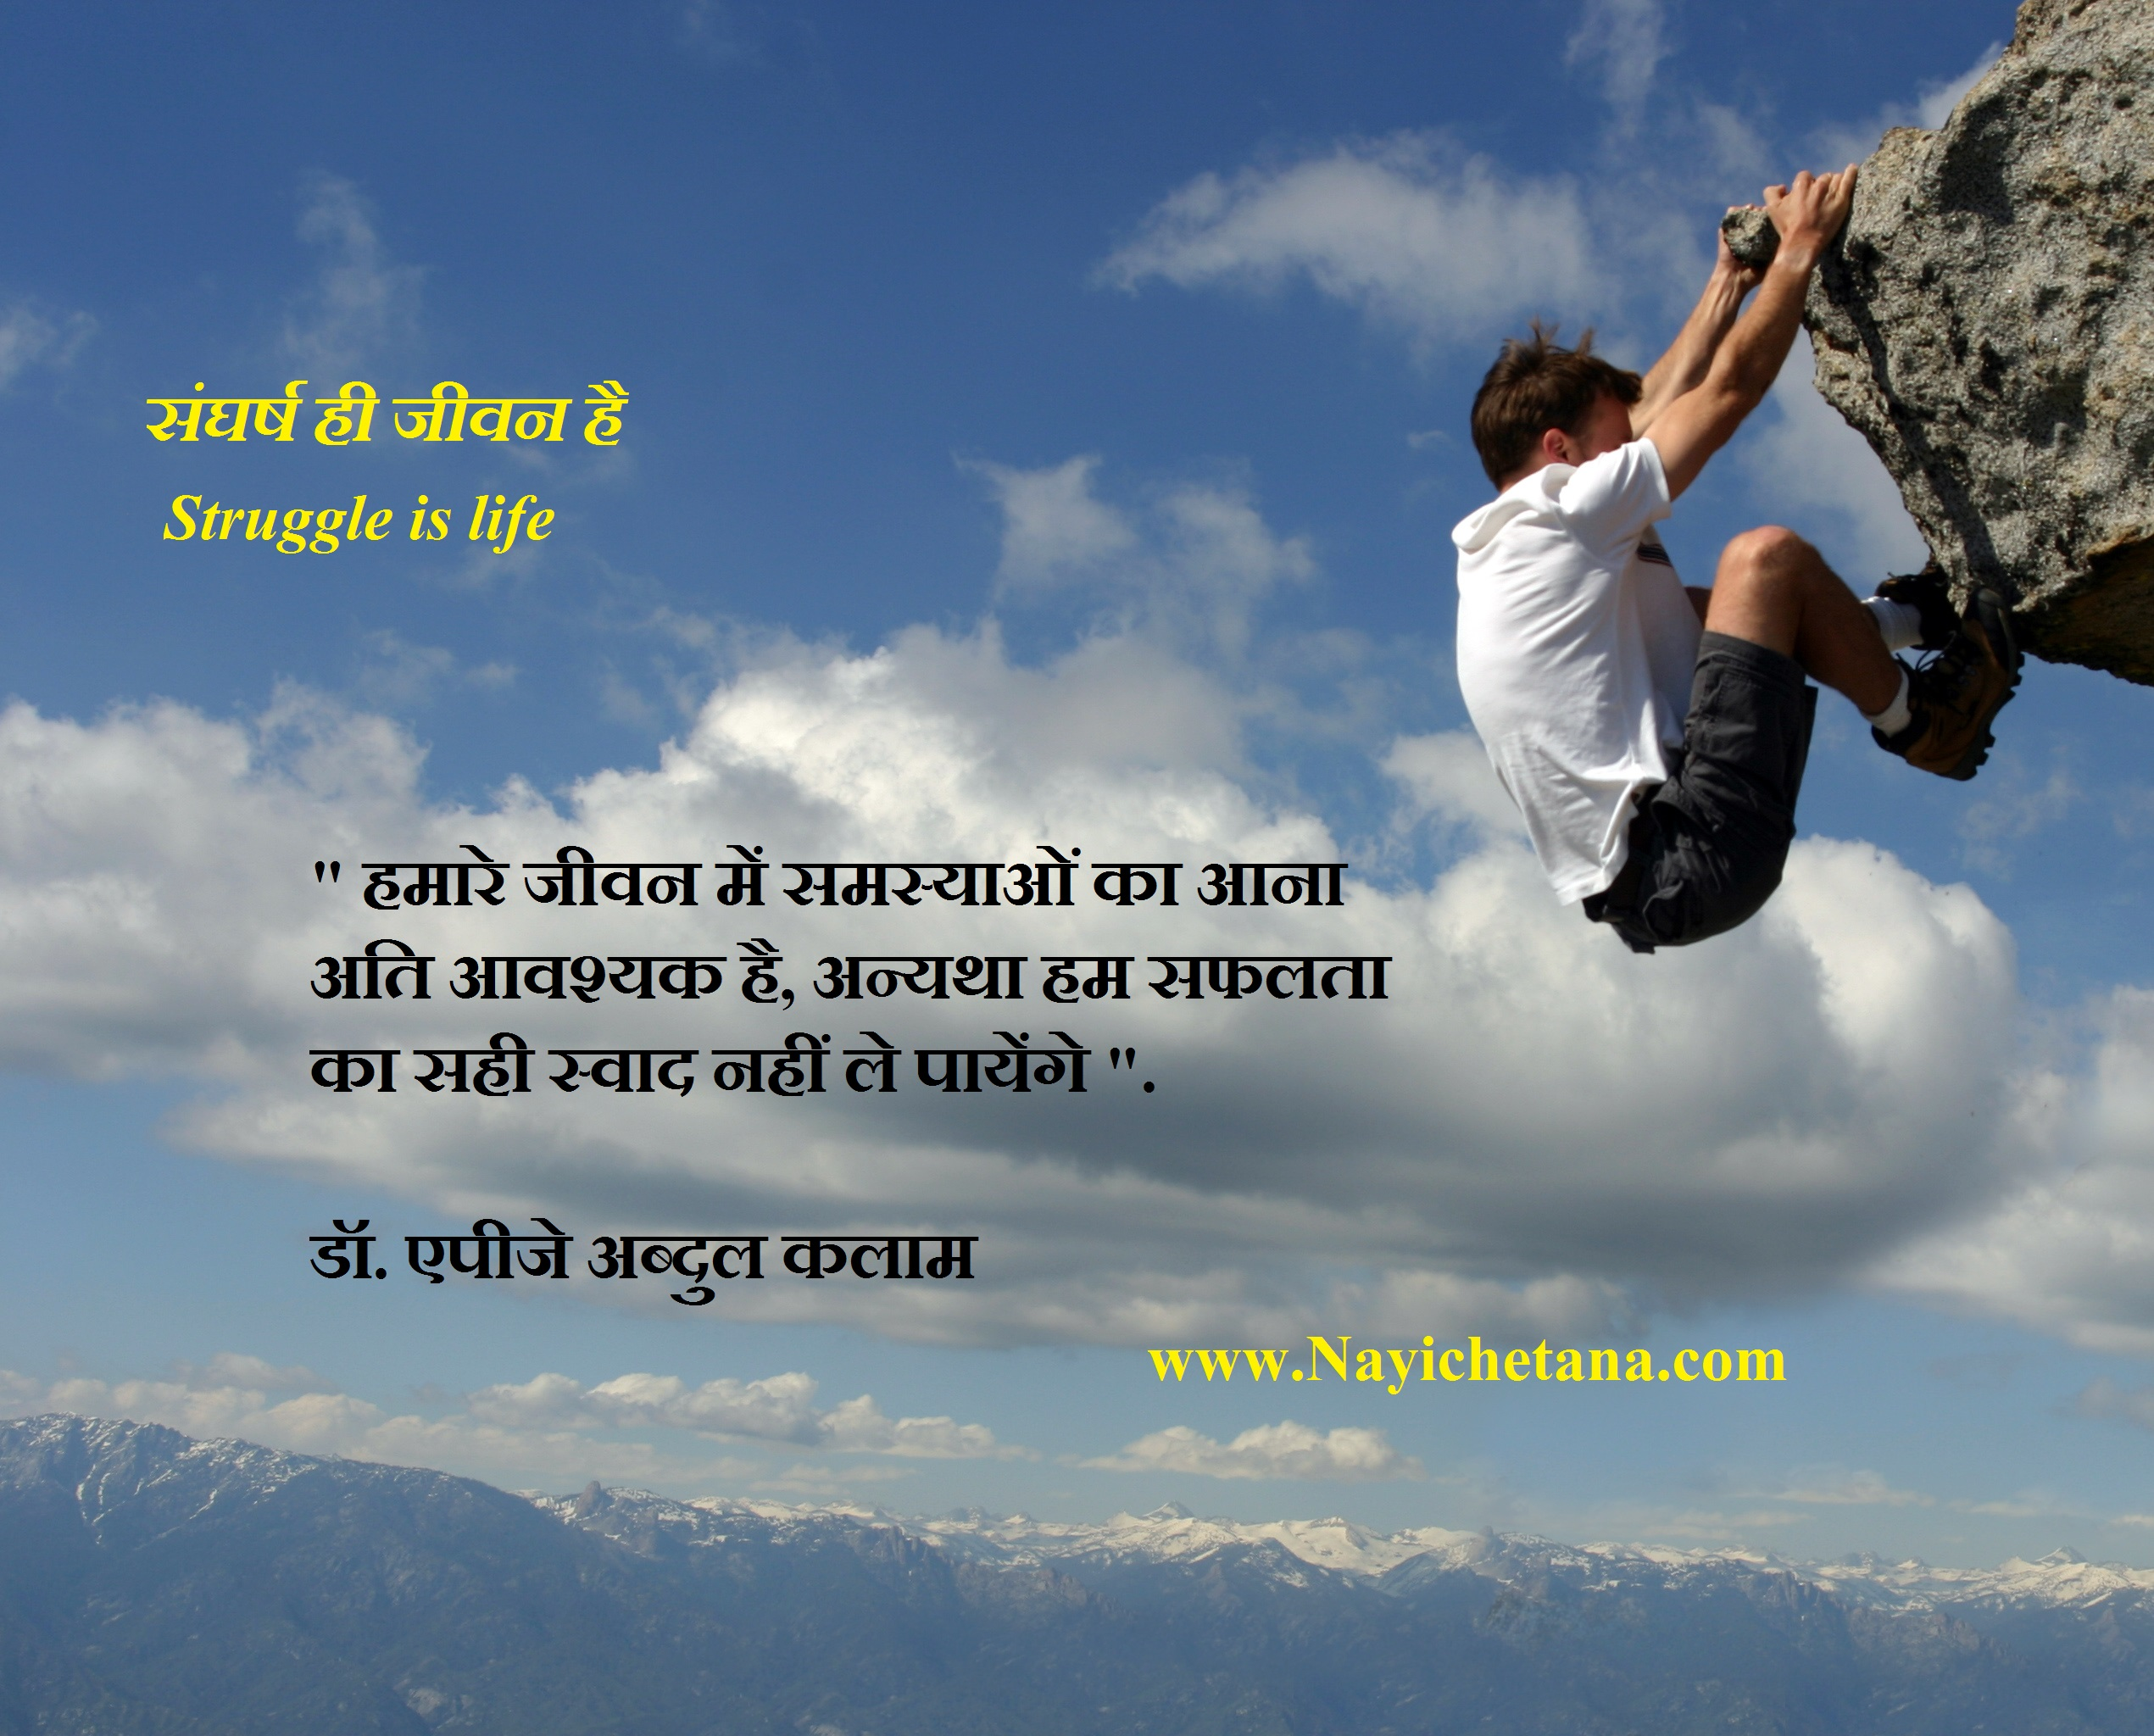 Struggle Is Life - An Article of Struggle In Hindi